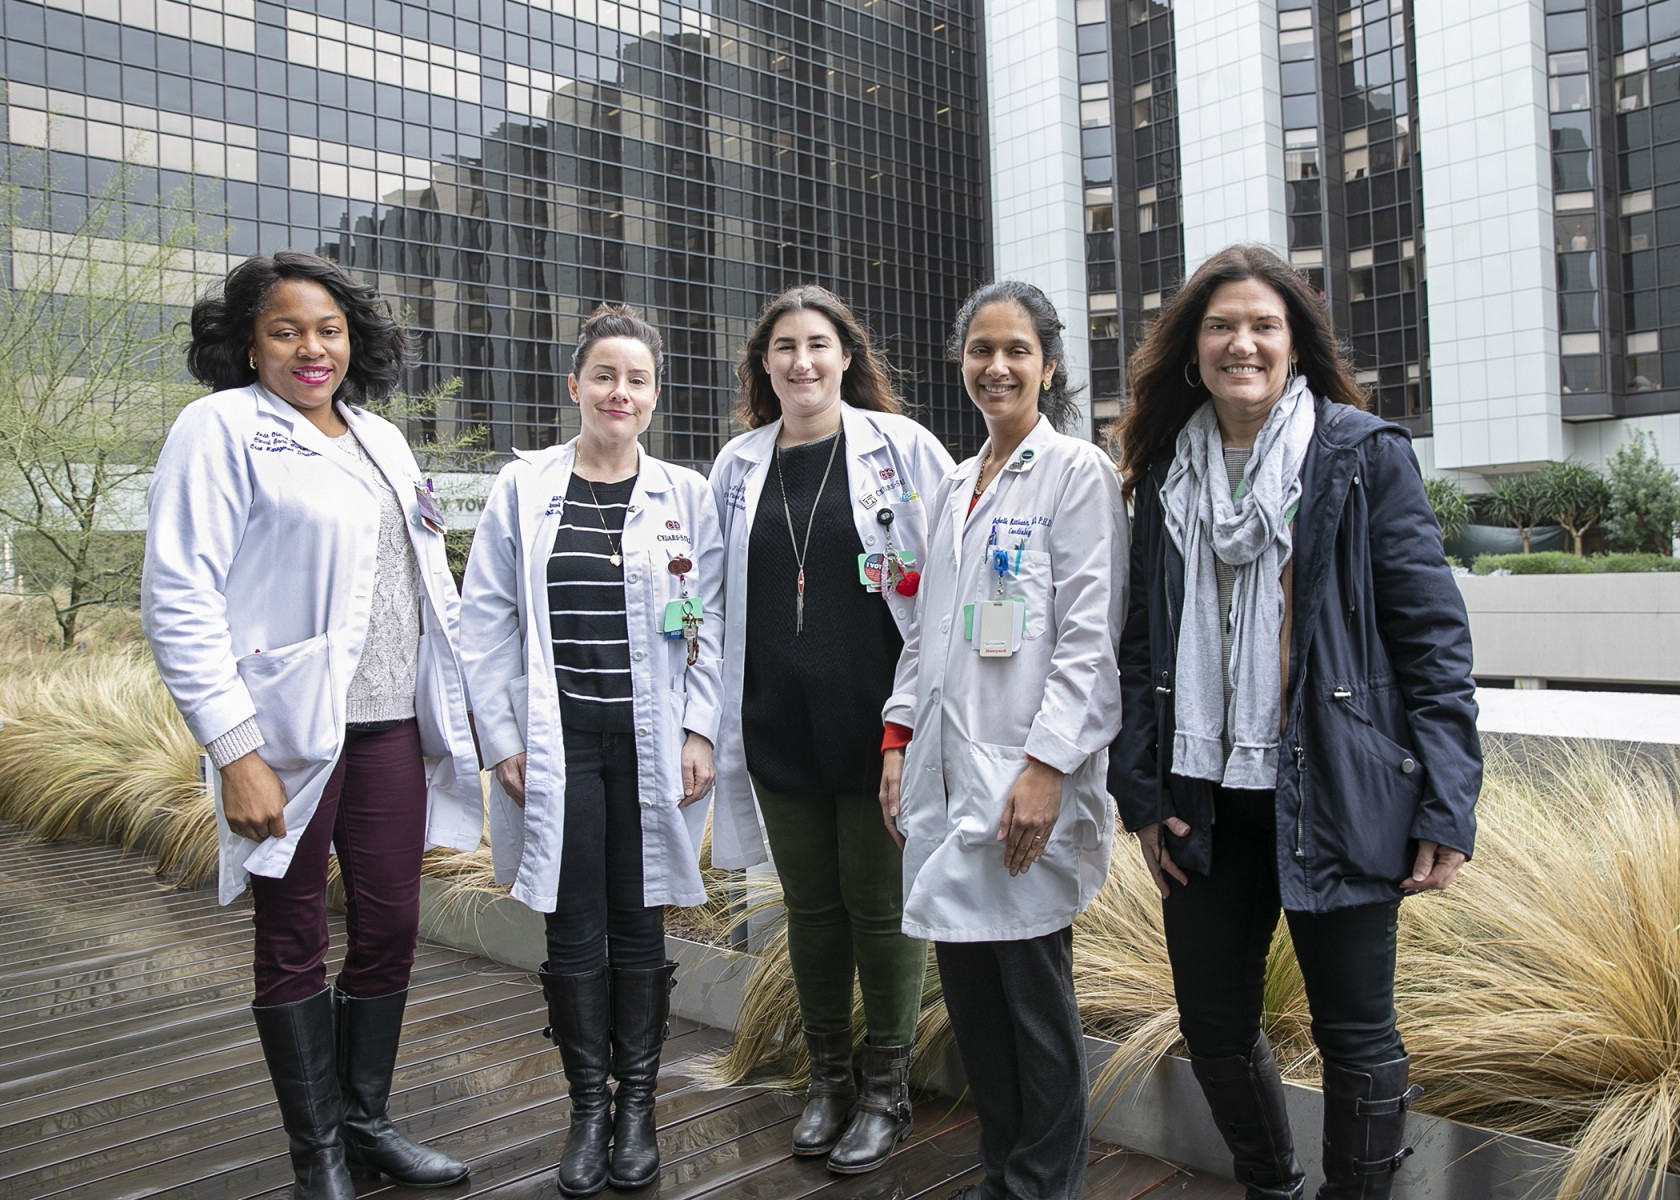 From left to right, Linda Olanisa, LCSW; Megan Olman, LCSW; Alisa Fishman, LCSW; Michelle Kittleson, MD, PhD; Angela Velleca, RN. Photo by Cedars-Sinai.